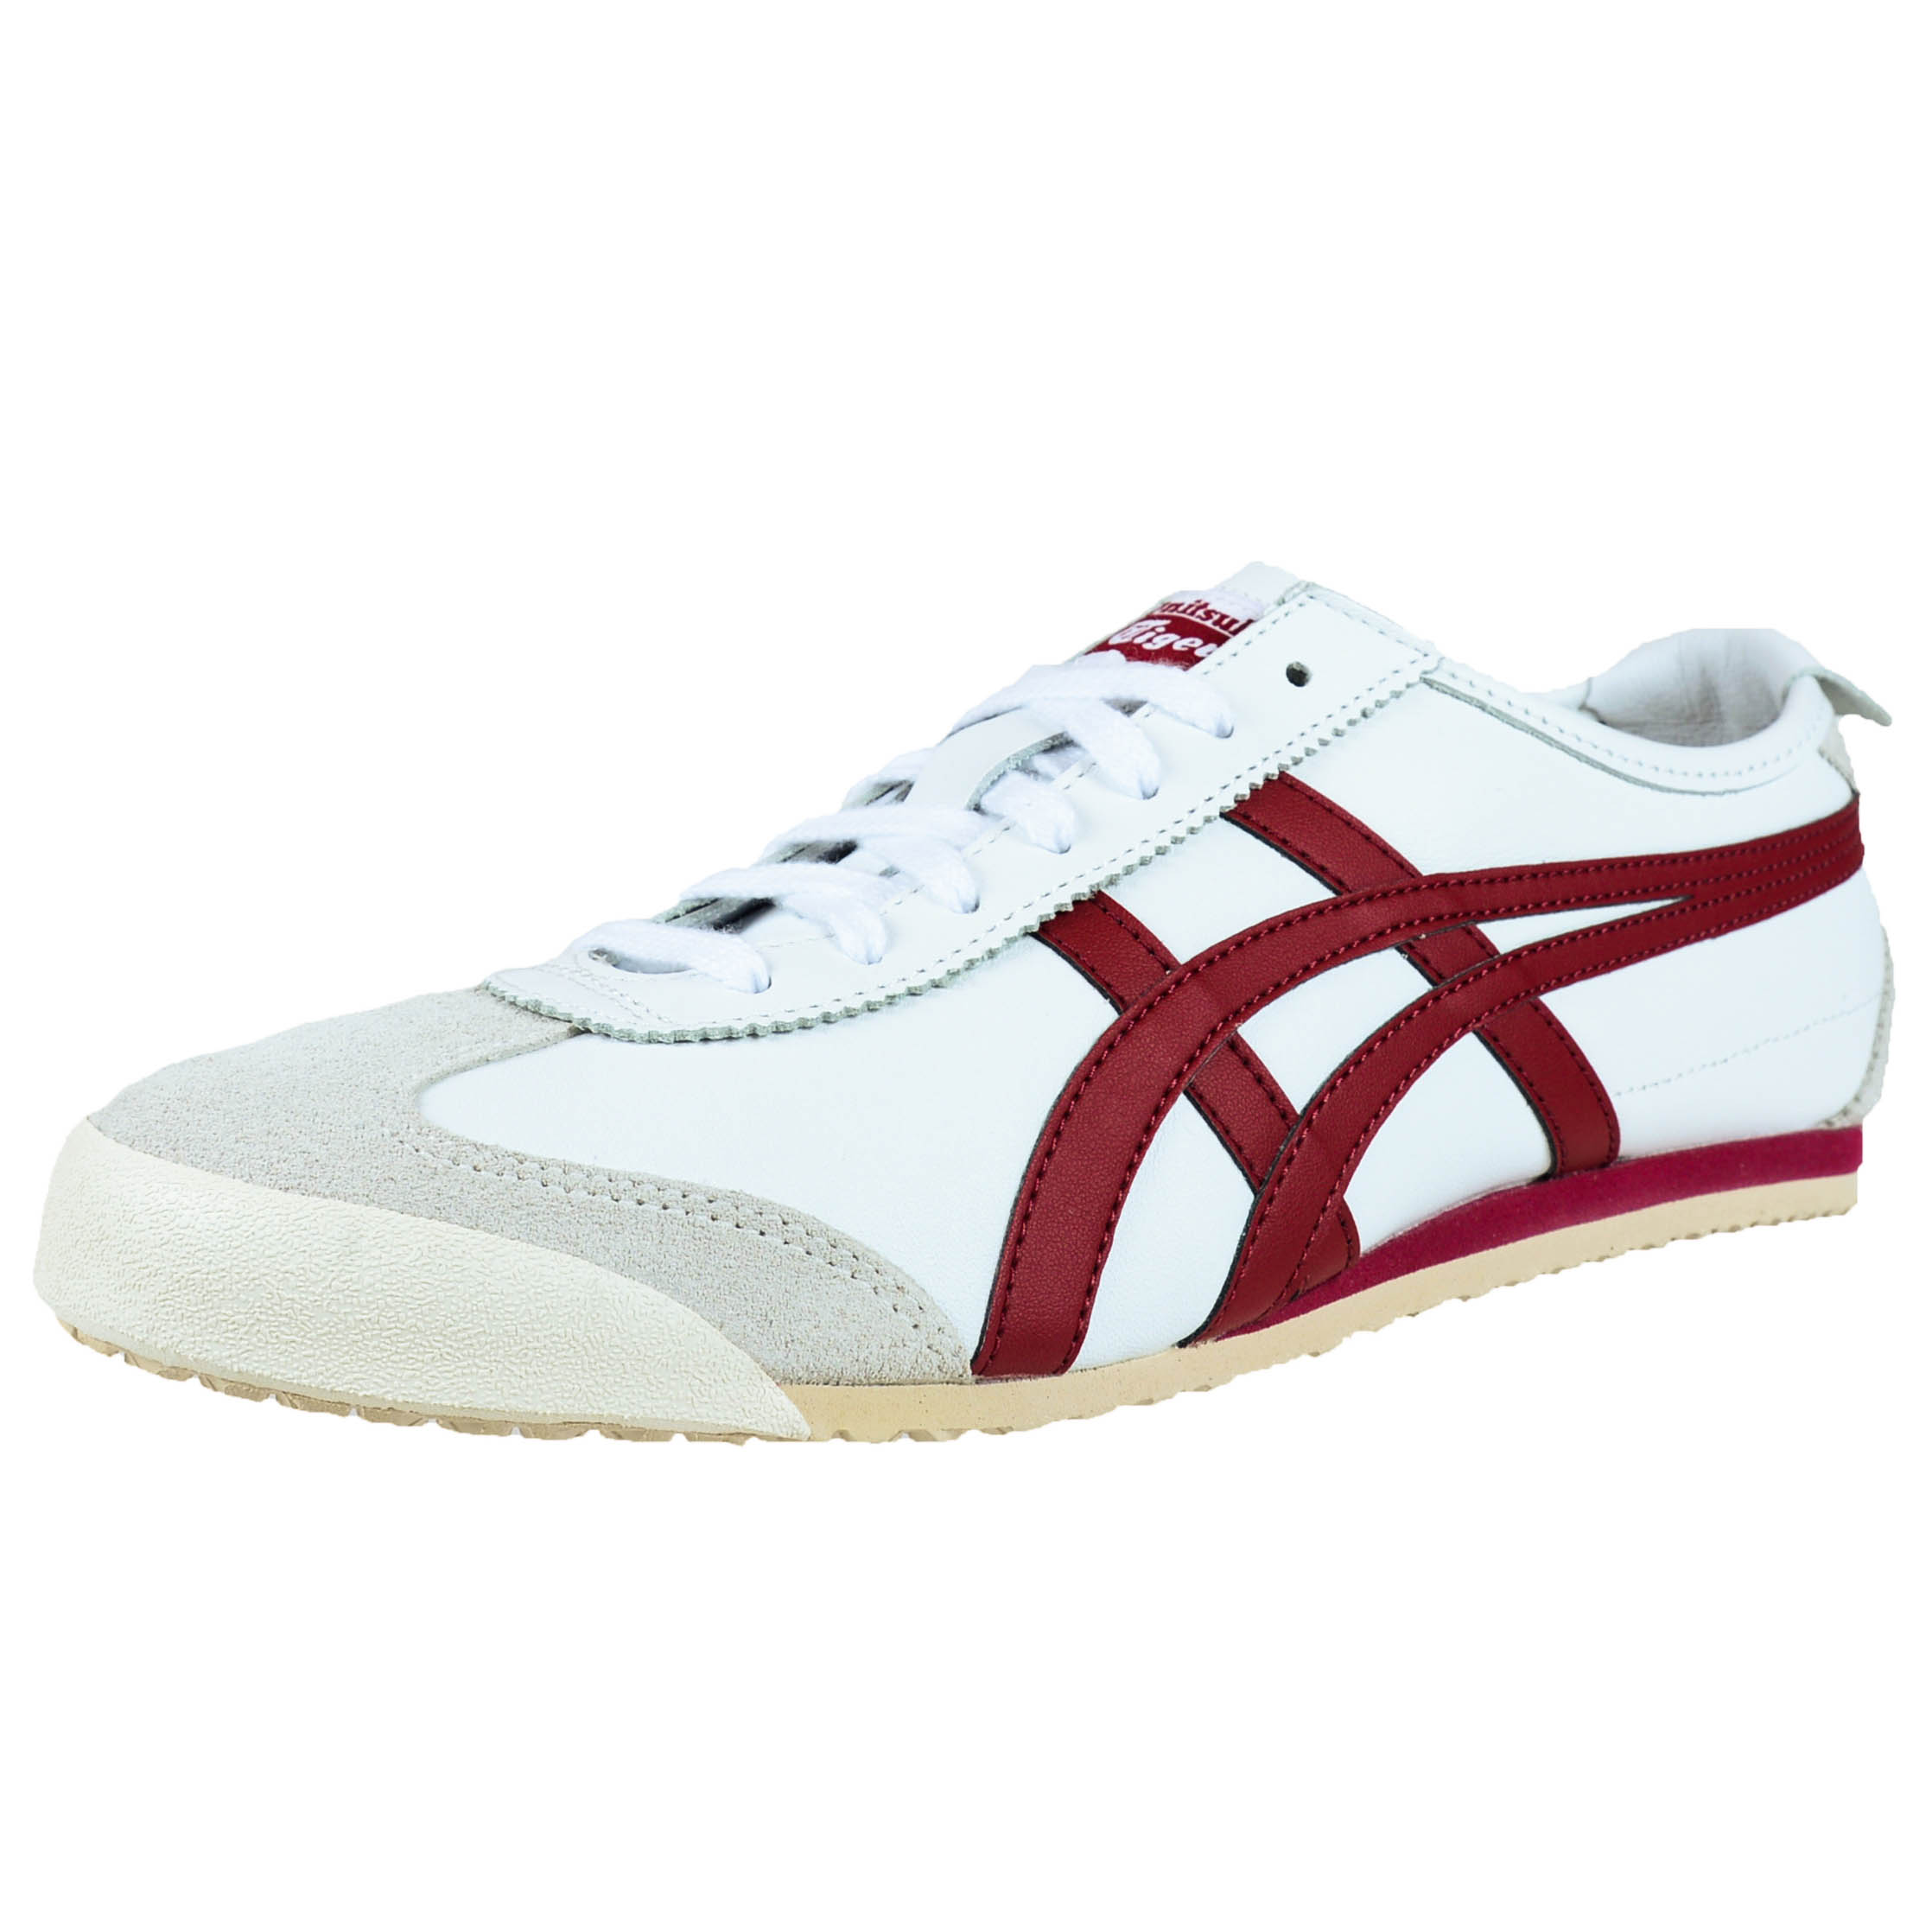 Asics Onitsuka Tiger 2017 France